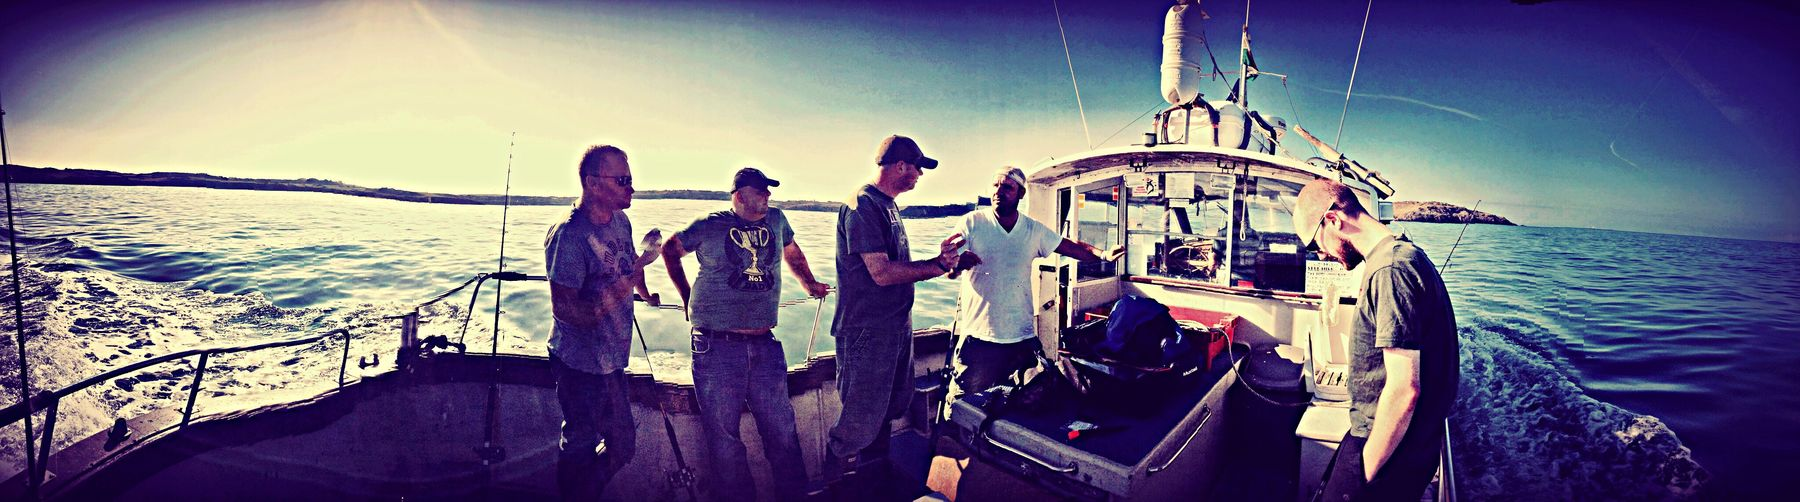 Hanging Out Fishing Fishing Boat Great Day